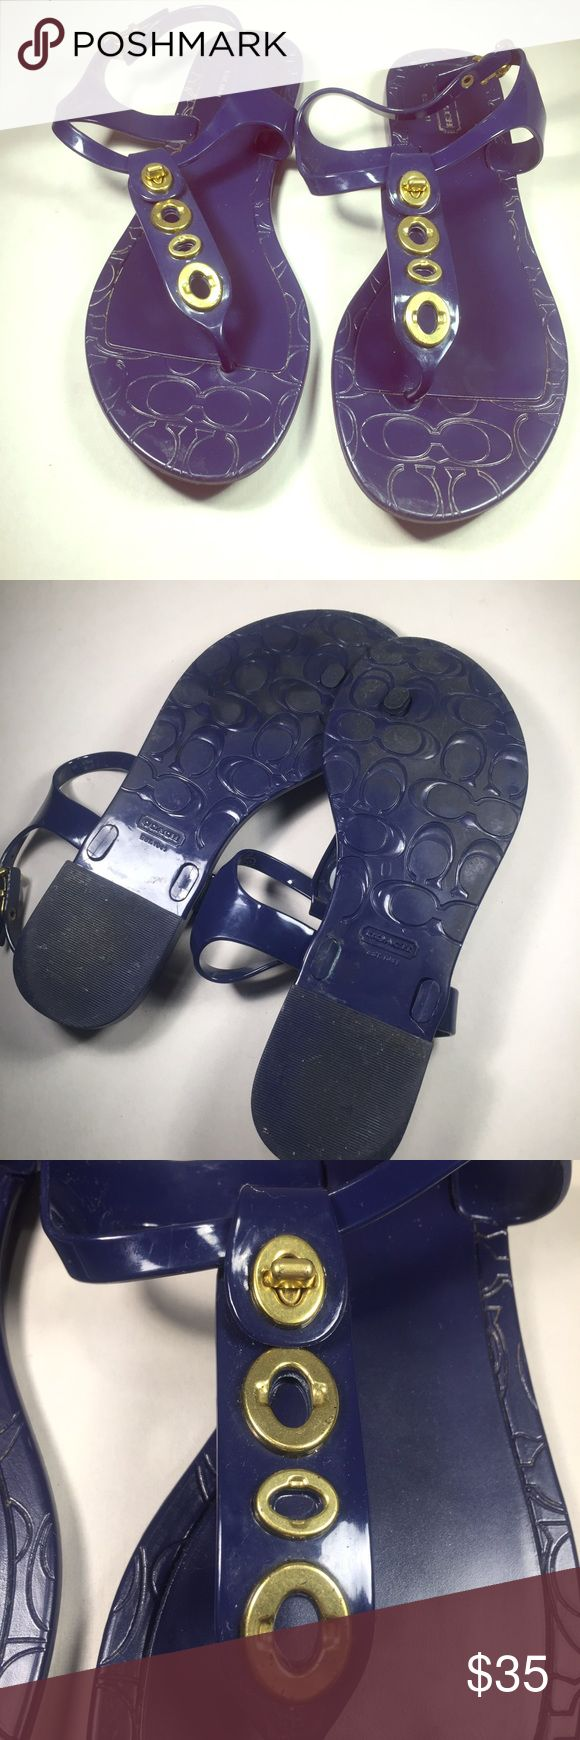 COACH Women's Jelly Sandals.  Size 8B COACH Women's Jelly Sandals.  Size 8B.  Open toe and a adjustable side strap. COACH logo styled on the insoles.   Dark Purple and Brass Hardware. Nice pre-owned condition and adorable COACH style! Orig. $80.00. Coach Shoes Sandals